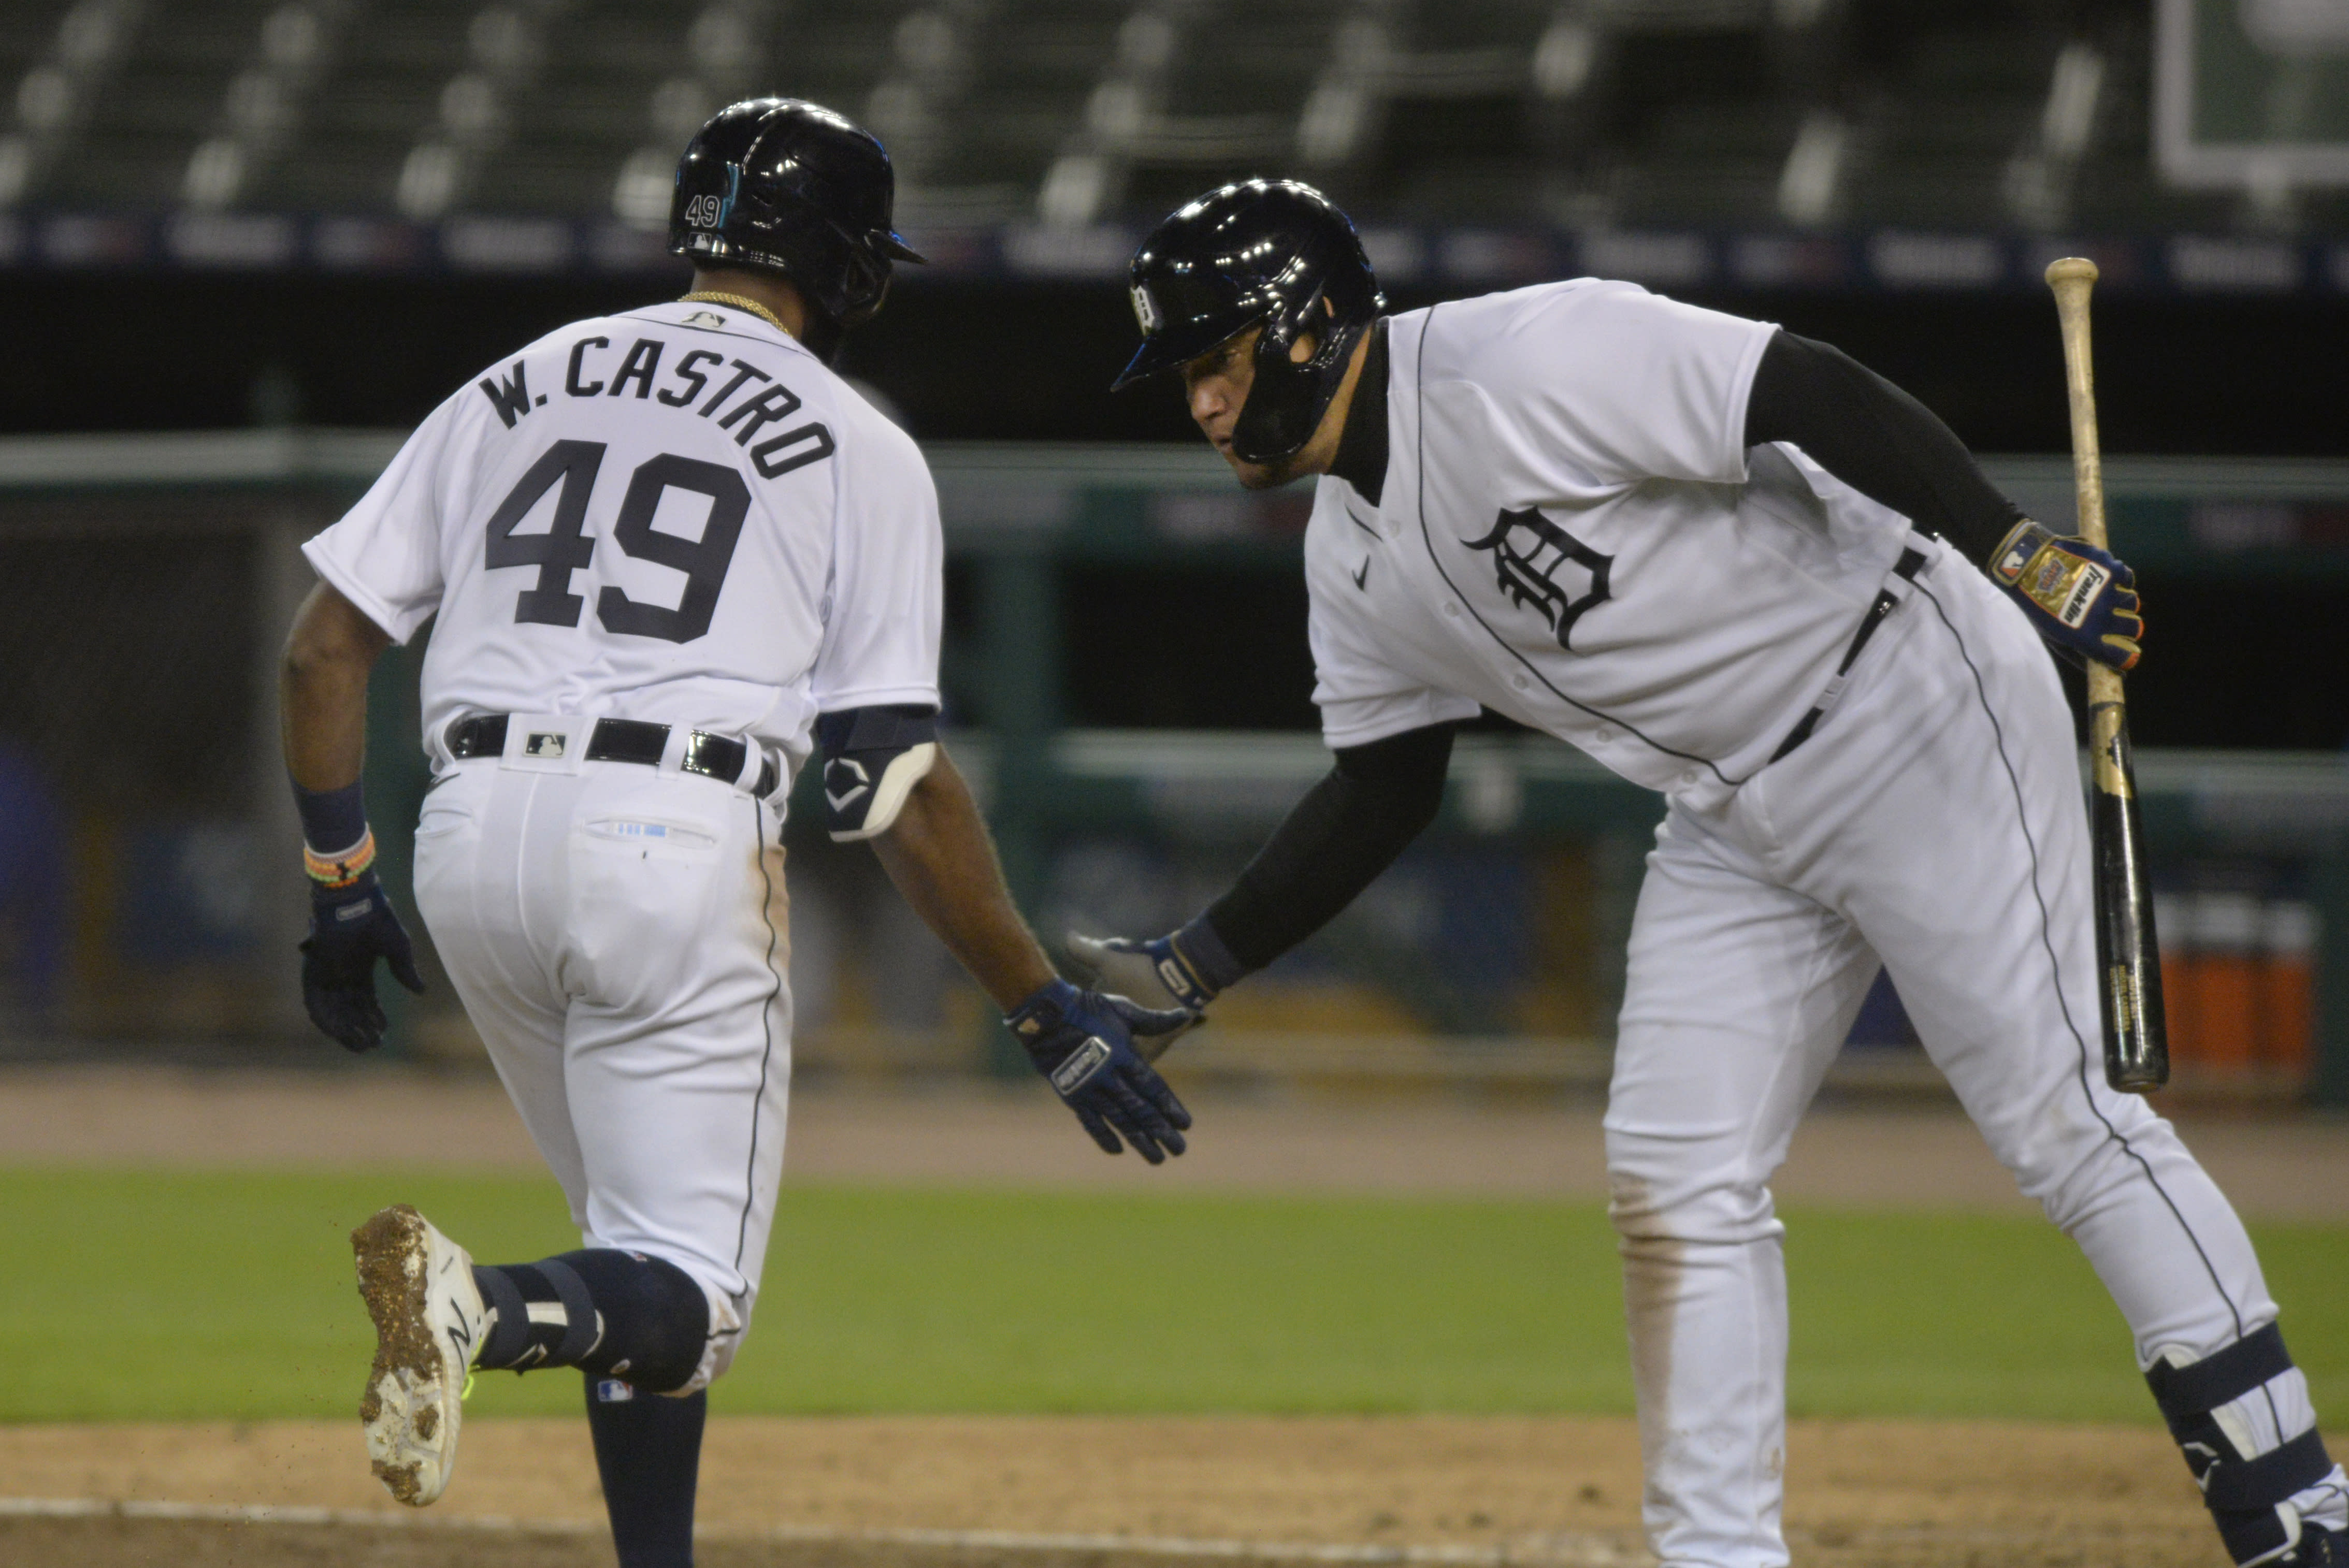 Detroit Tigers' Willi Castro is congratulated by Miguel Cabrera after hitting a home run against the Kansas City Royals during the sixth inning of a baseball game Tuesday, Sept. 15, 2020, in Detroit. The Tigers won 6-0. (AP Photo/Jose Juarez)